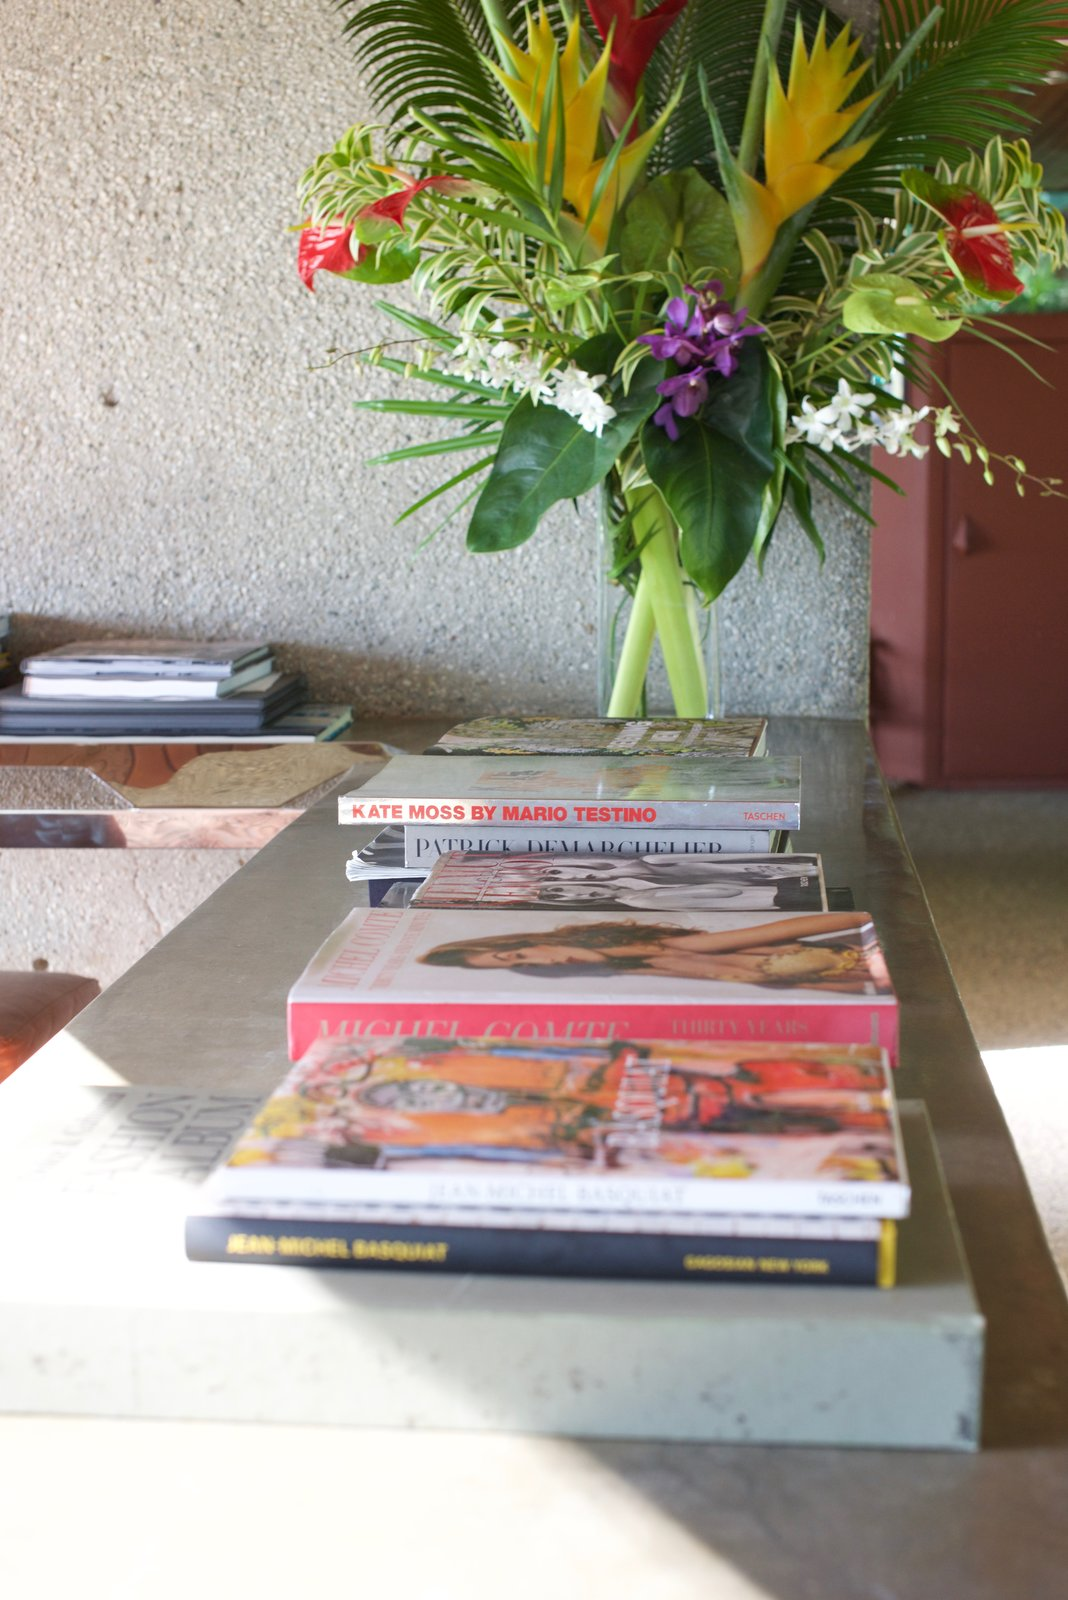 Goldstein's inspirations and experiences can be found throughout the house in photos, magazines, and books.  Behind the Scenes at John Lautner's Sheats-Goldstein Residence by Paige Alexus